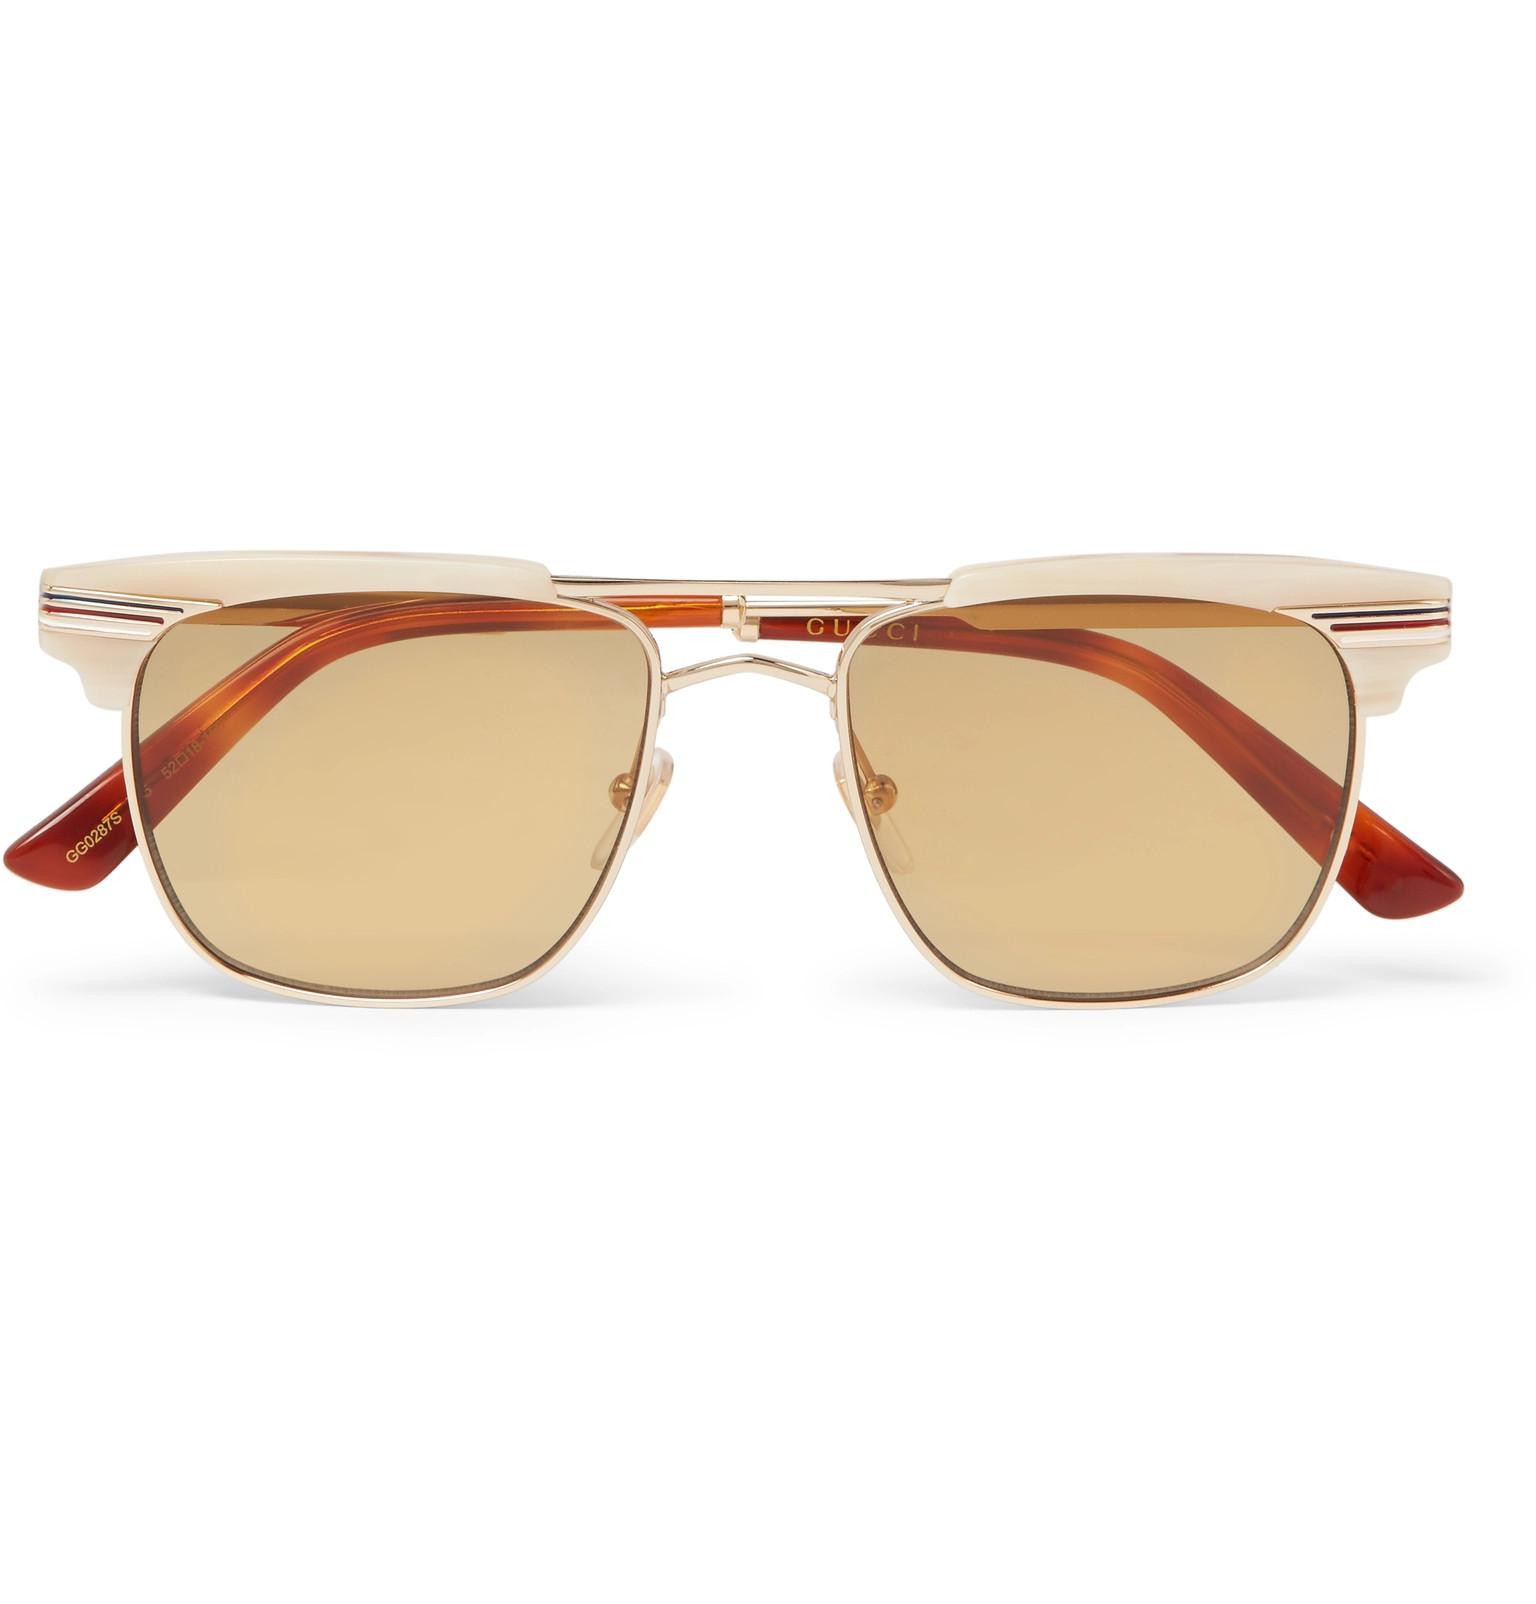 5a60e9579d Gucci D-frame Acetate And Gold-tone Sunglasses in Brown for Men - Lyst